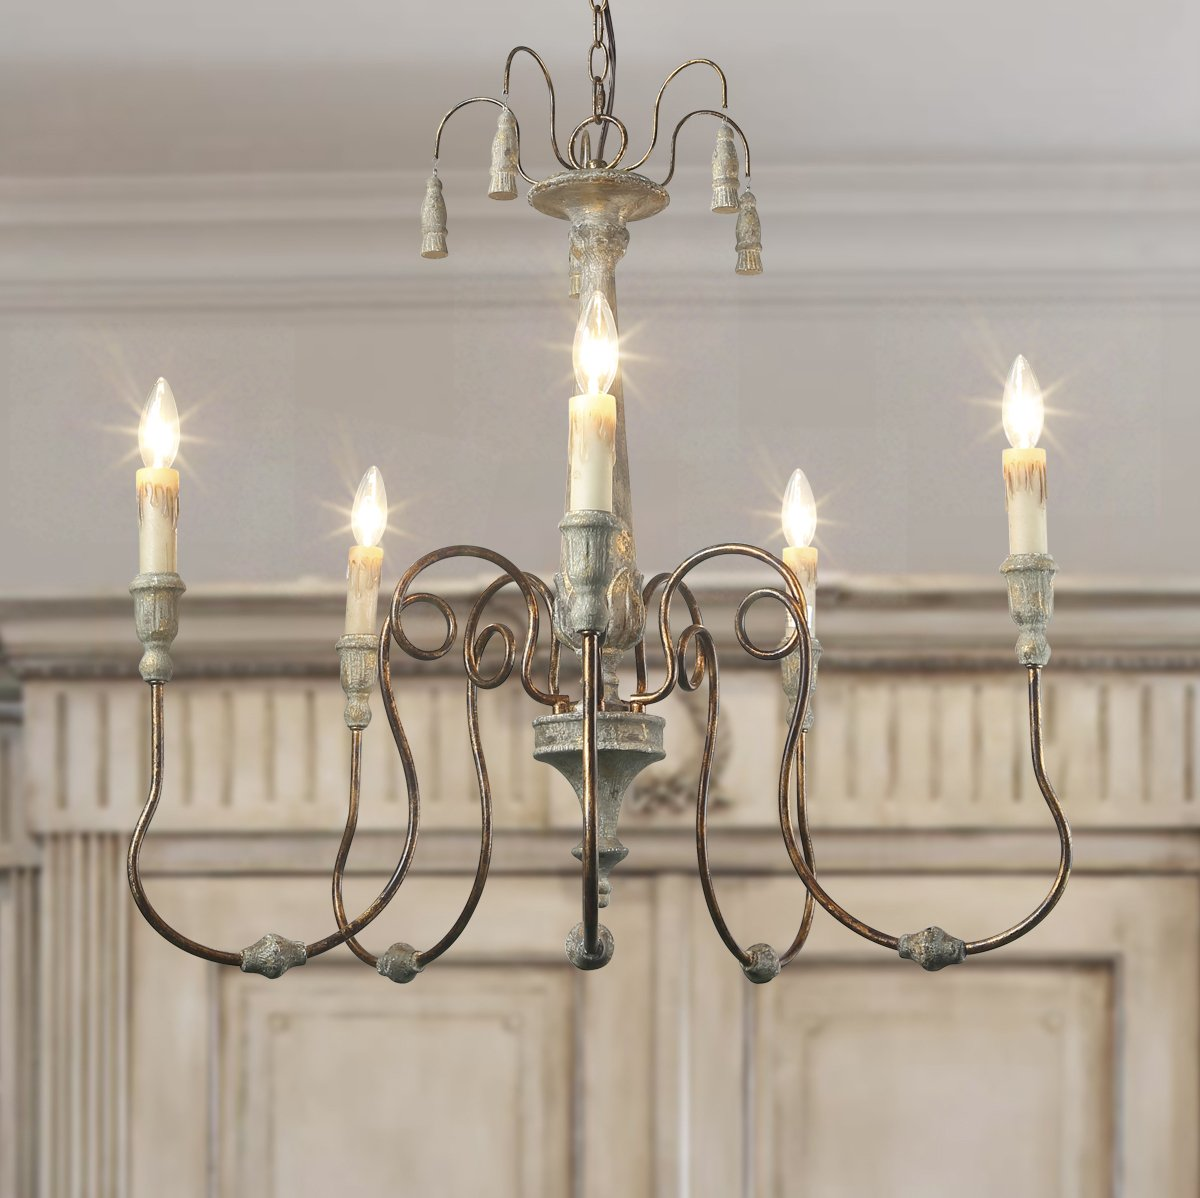 LALUZ 5-Lights Shabby Chic French Country Resin Chandelier Lighting Rustic Chandeliers Pendant Lights